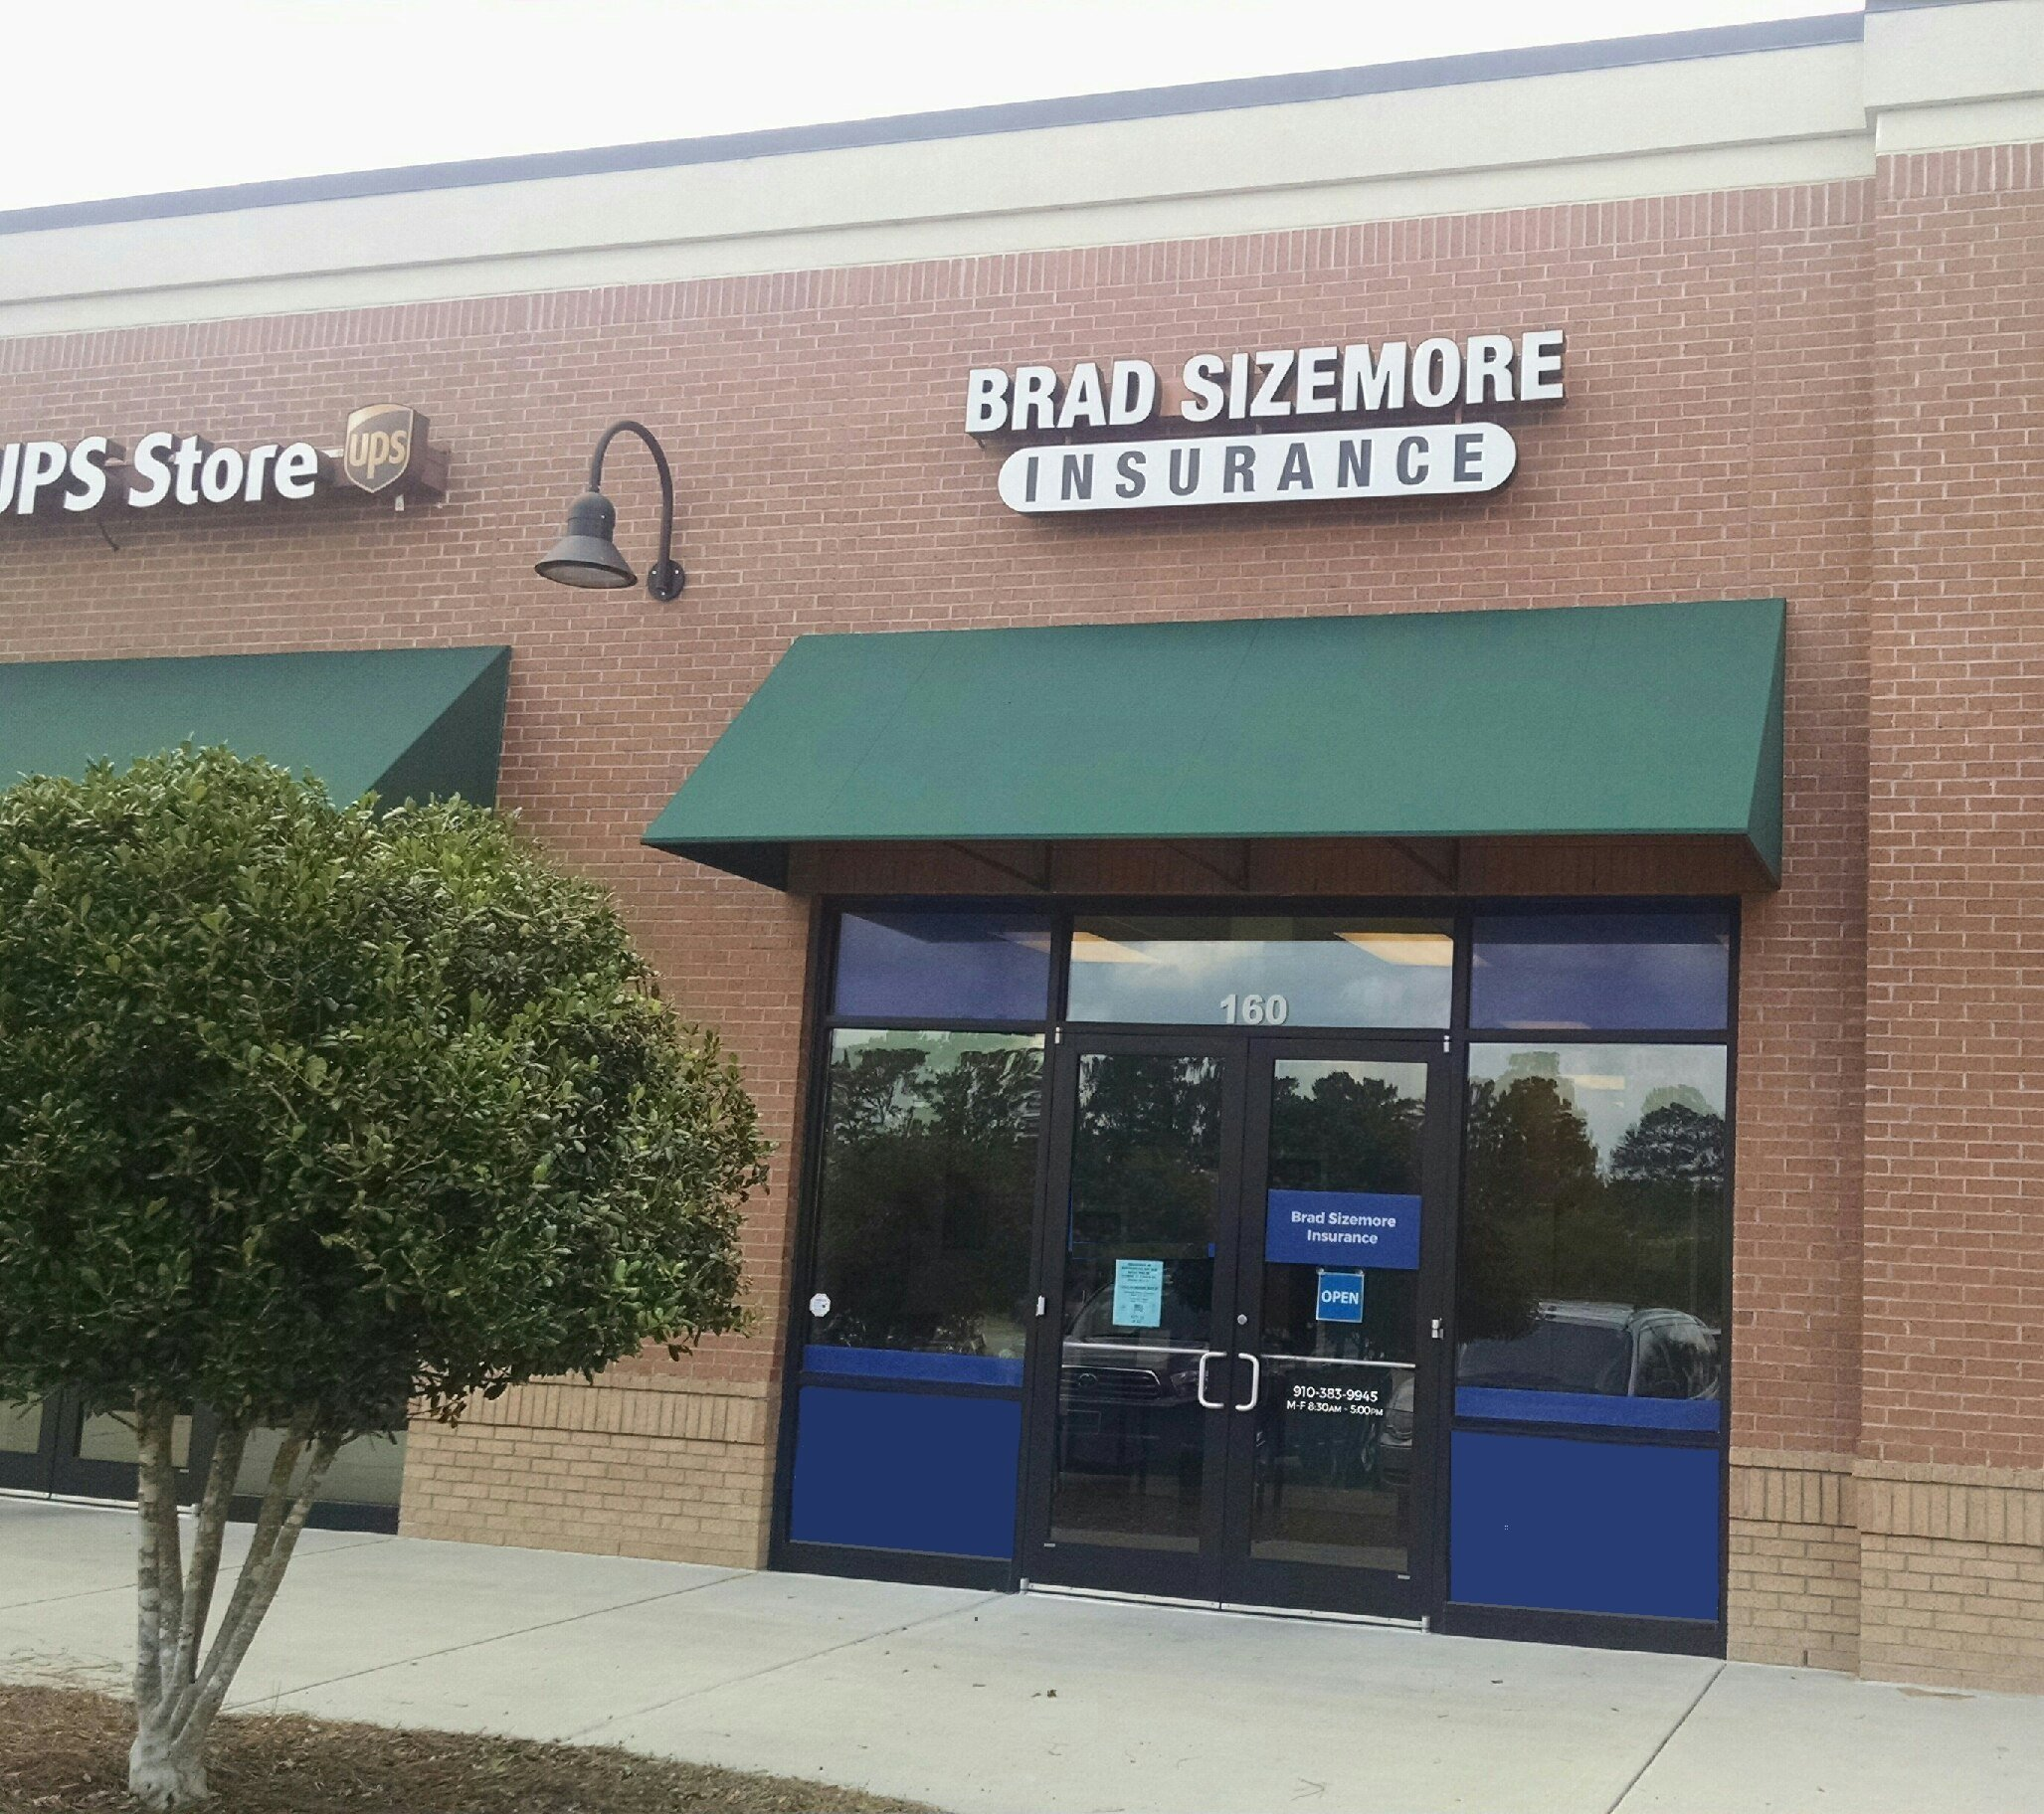 Brad Sizemore Insurance - Business, Auto & Home Insurance Agency in Leland, NC